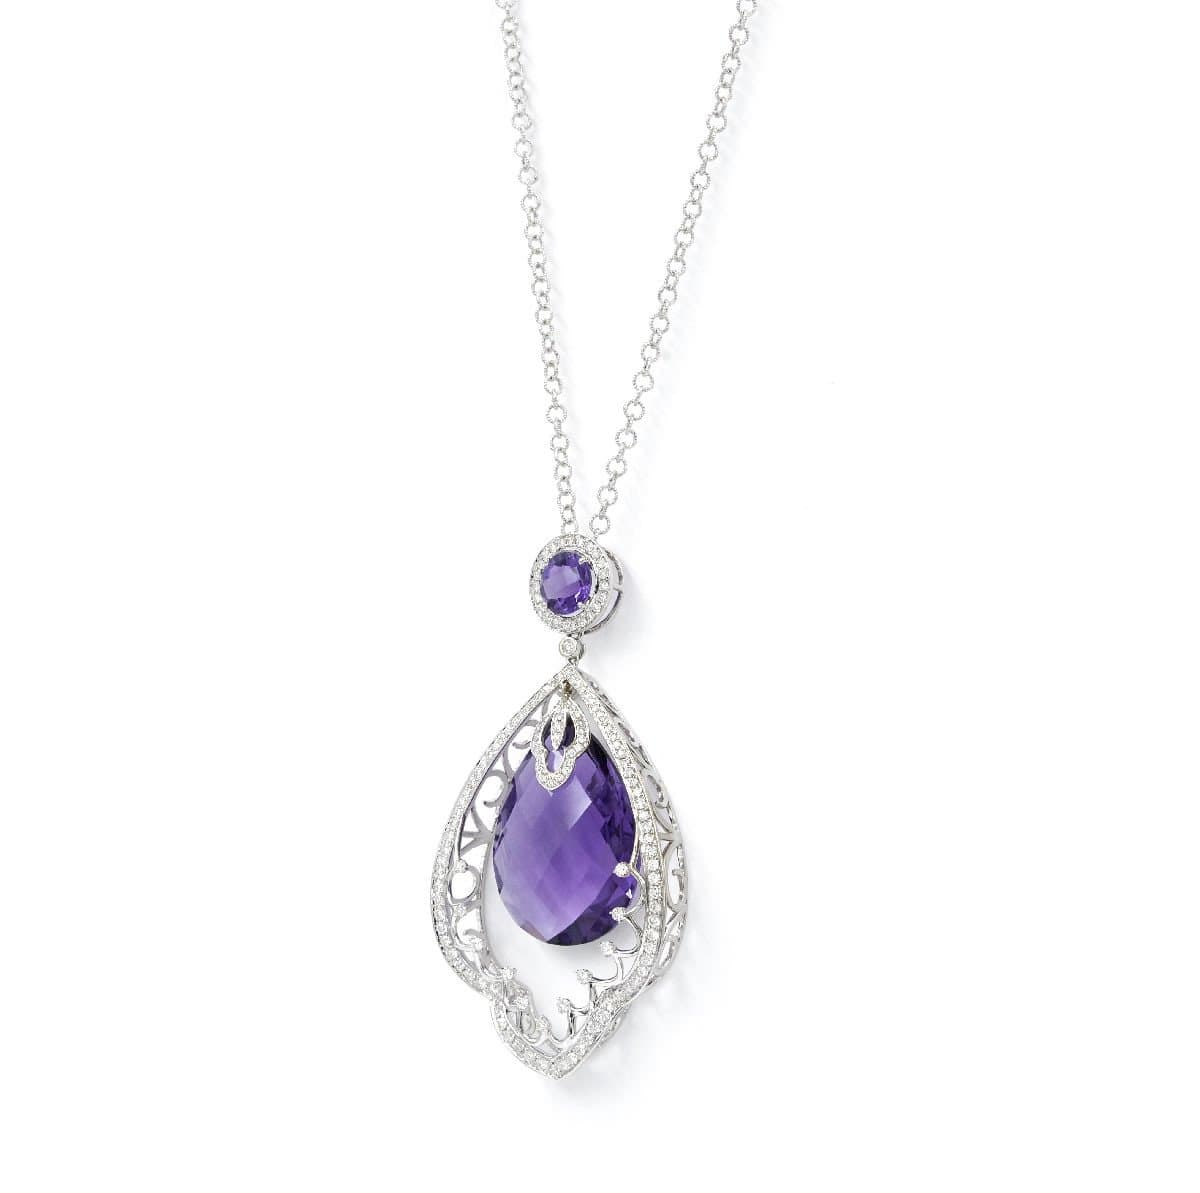 AMETHYST NECKLACE - QUEEN AMINA - Chris Aire Fine Jewelry & Timepieces